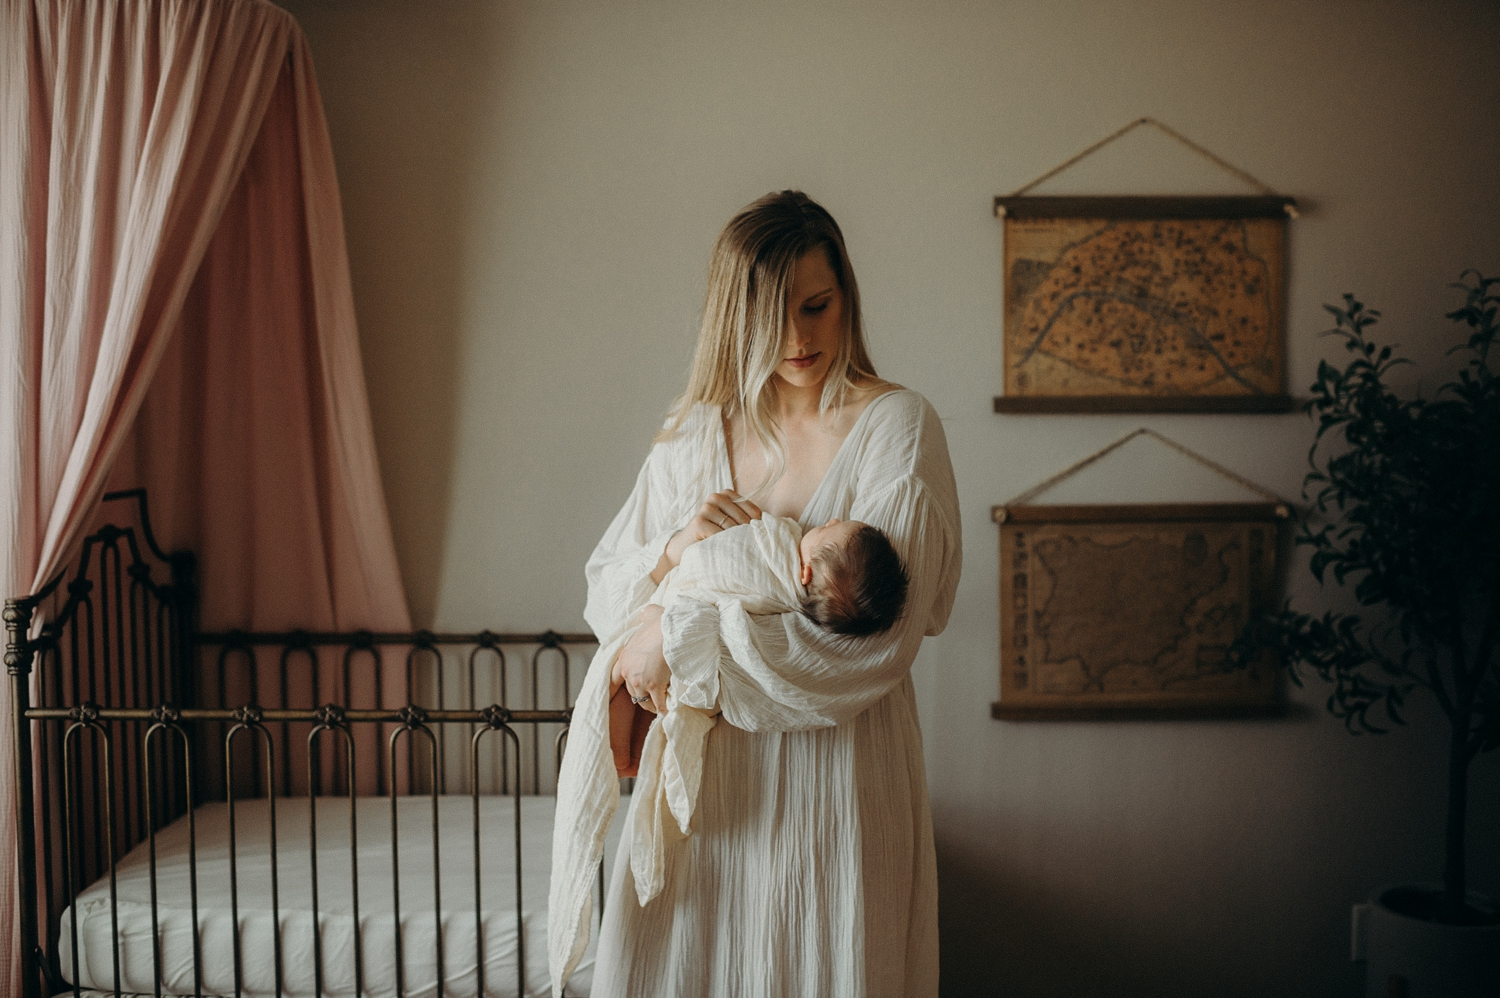 mother holding baby next to crib in nursery